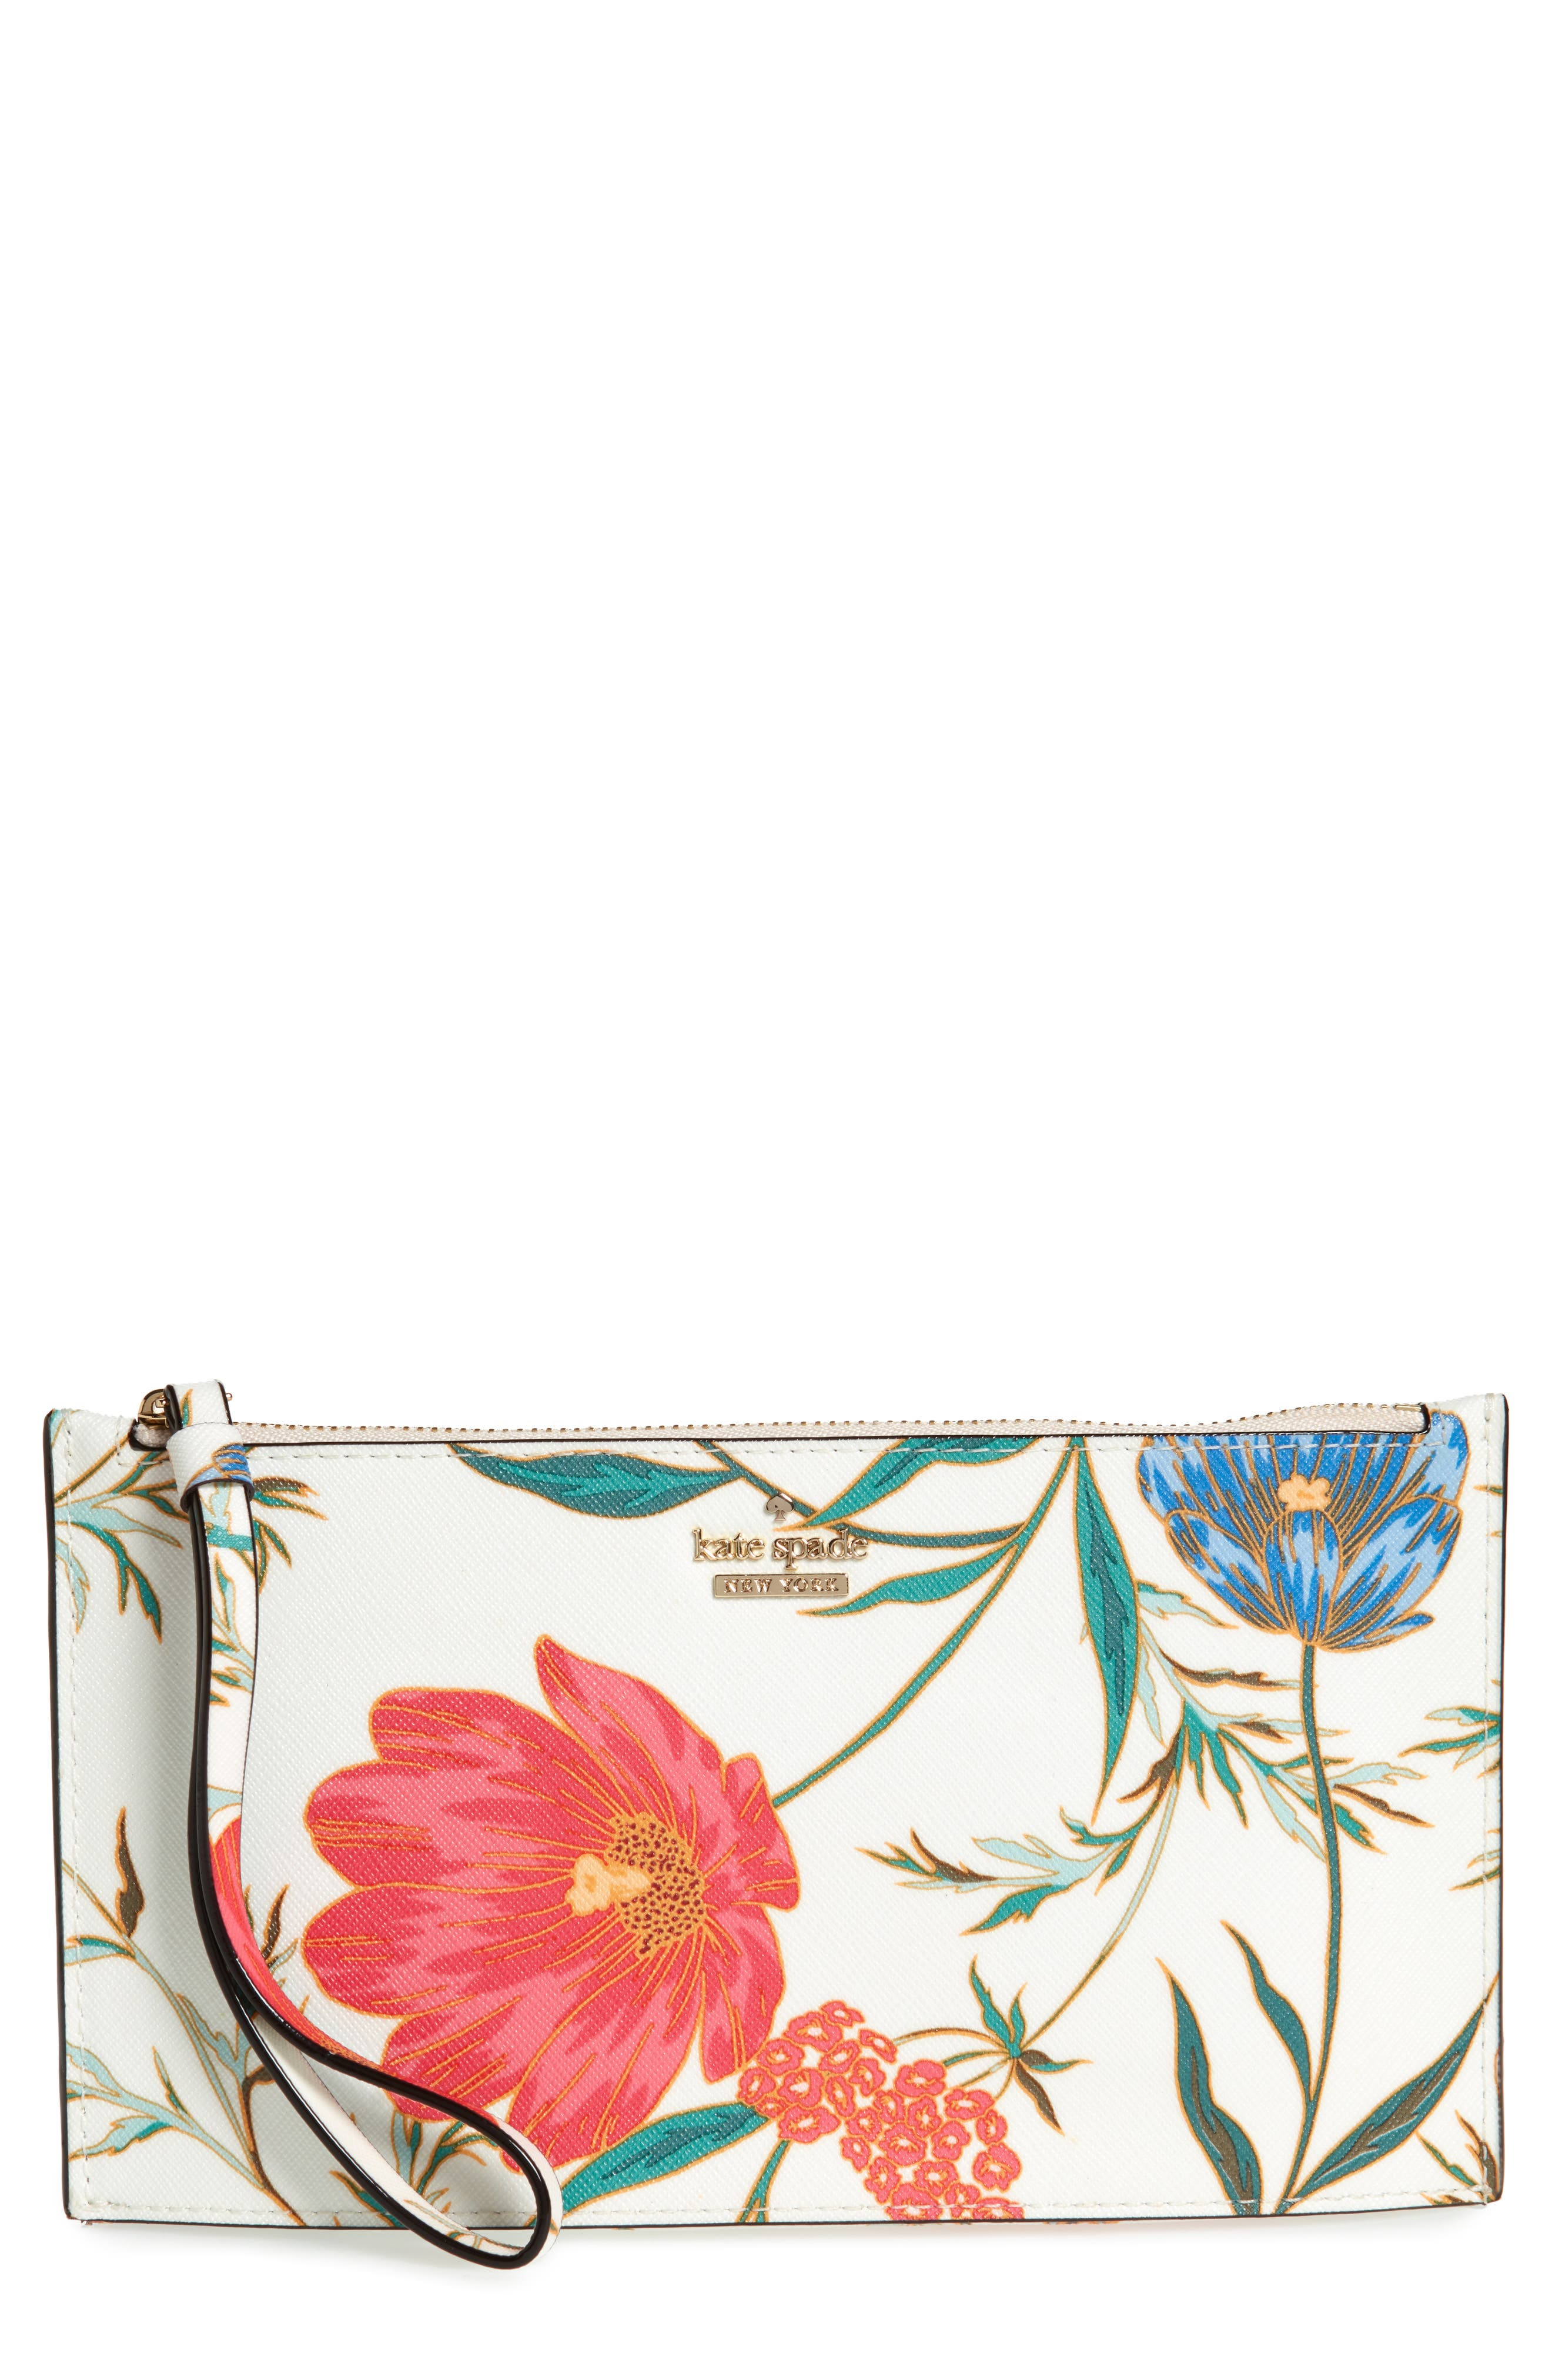 cameron street blossom ariah coated canvas pouch,                             Main thumbnail 1, color,                             100